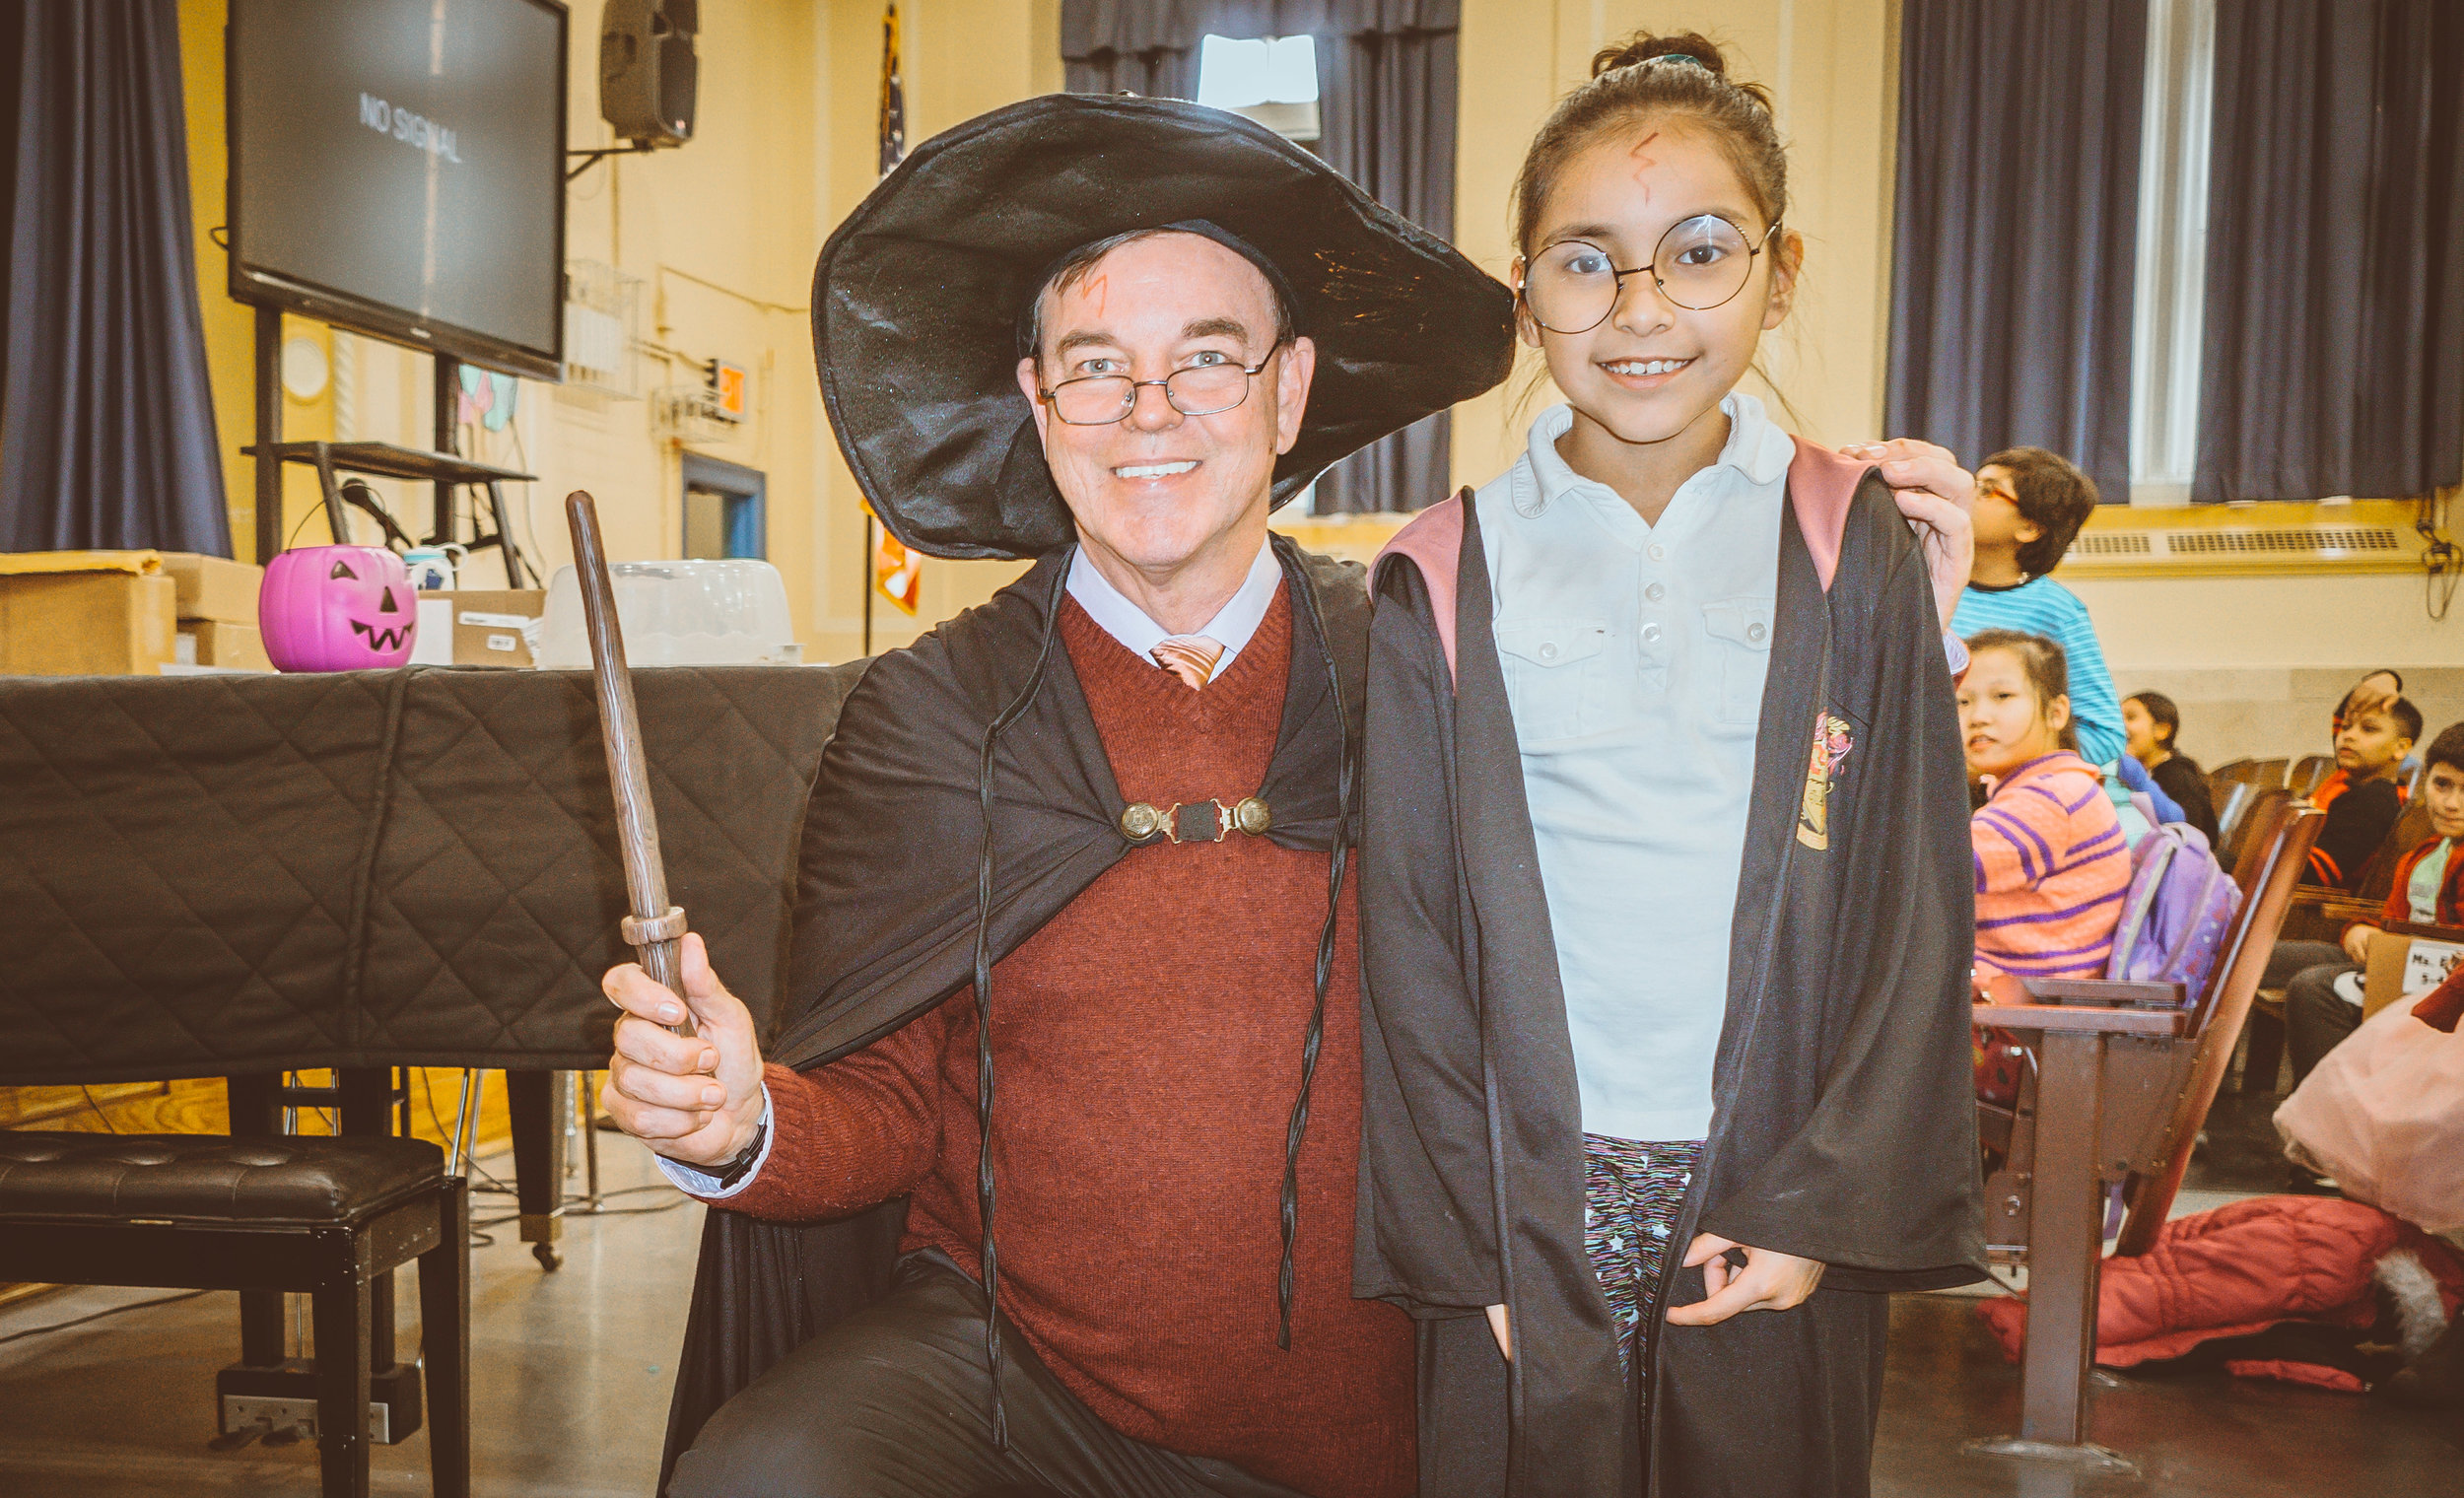 The upper grade teachers and students joined in the fun. J.K. Rowling would be proud.